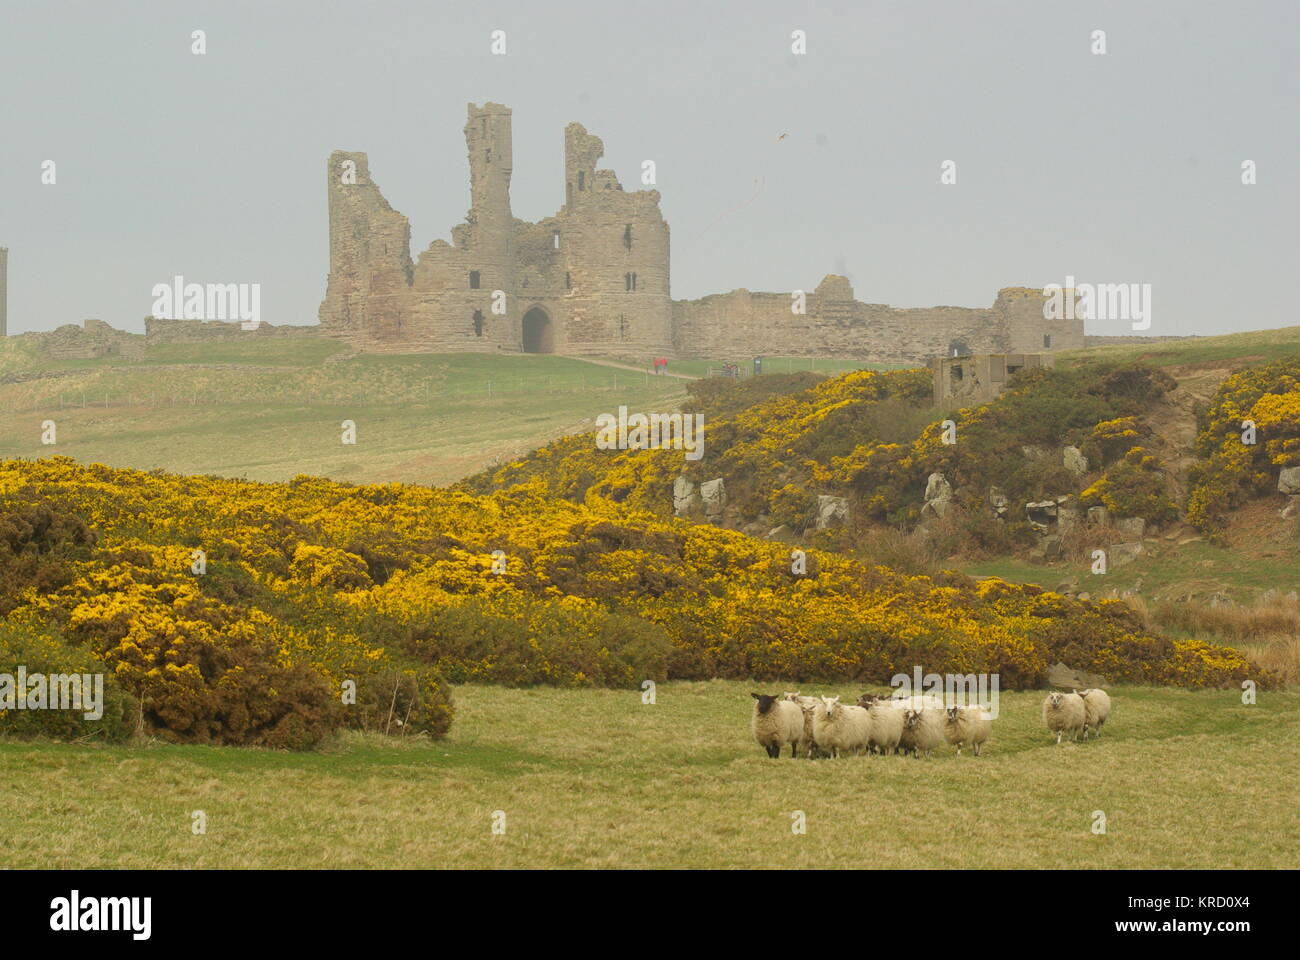 Dunstanburgh Castle on the coast of Northumberland, viewed across the gorse on a misty day, with a flock of sheep - Stock Image